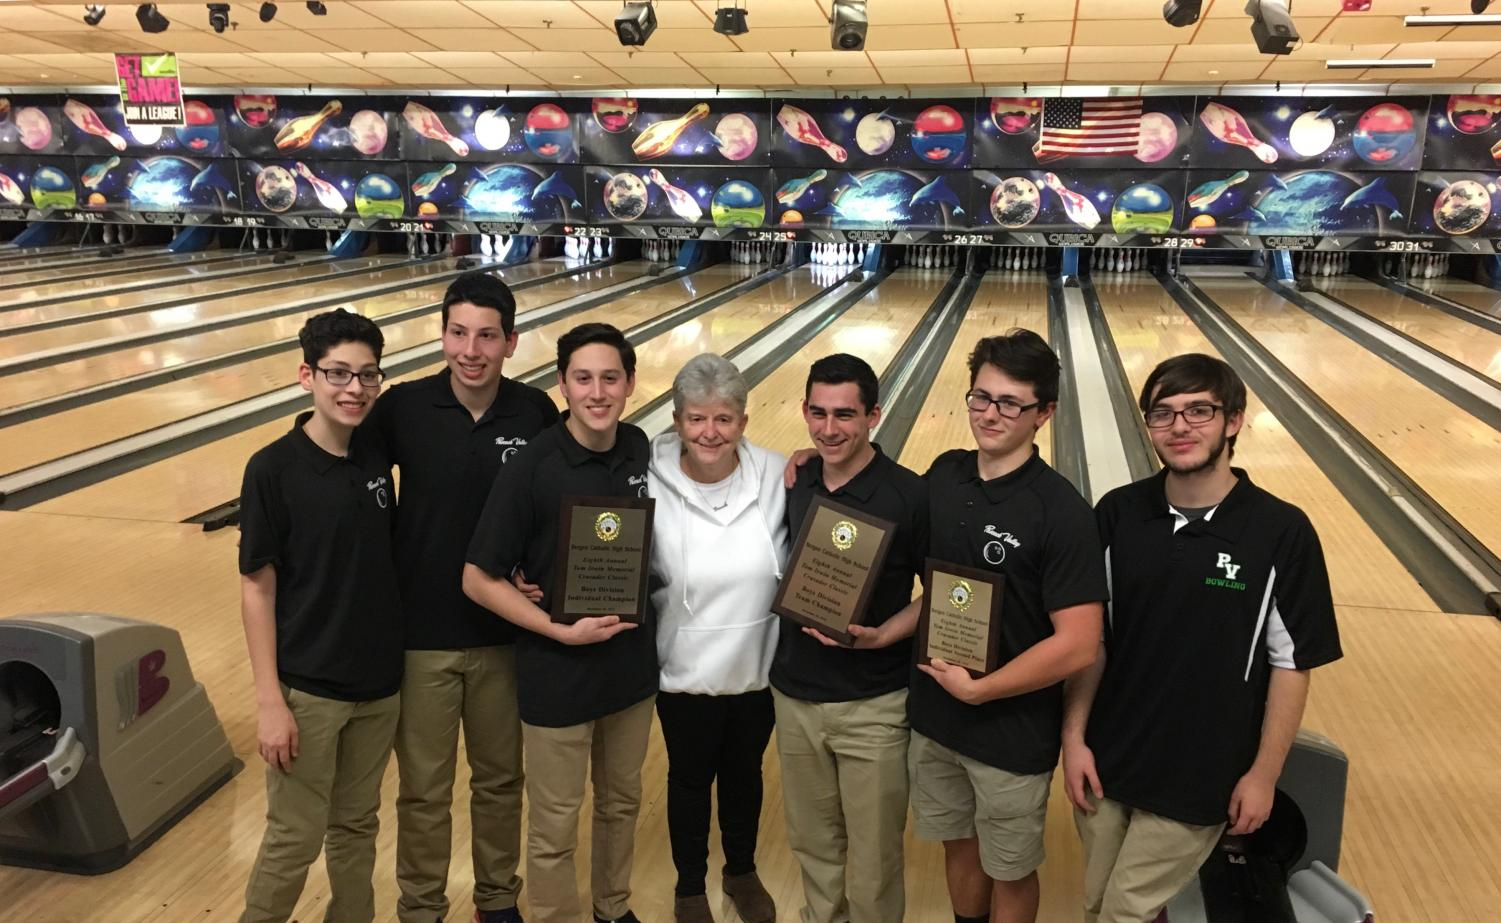 (From left) Evan Murad, Jake Murad, Trevor Lauber, Coach Judy Lucia, Scott Morris, Brian Biml, and James Holland pose after the Indians win in the Tom Irwin Classic. Valley will look to continue its early success and eventually emerge victorious in the county and state sectional tournaments.